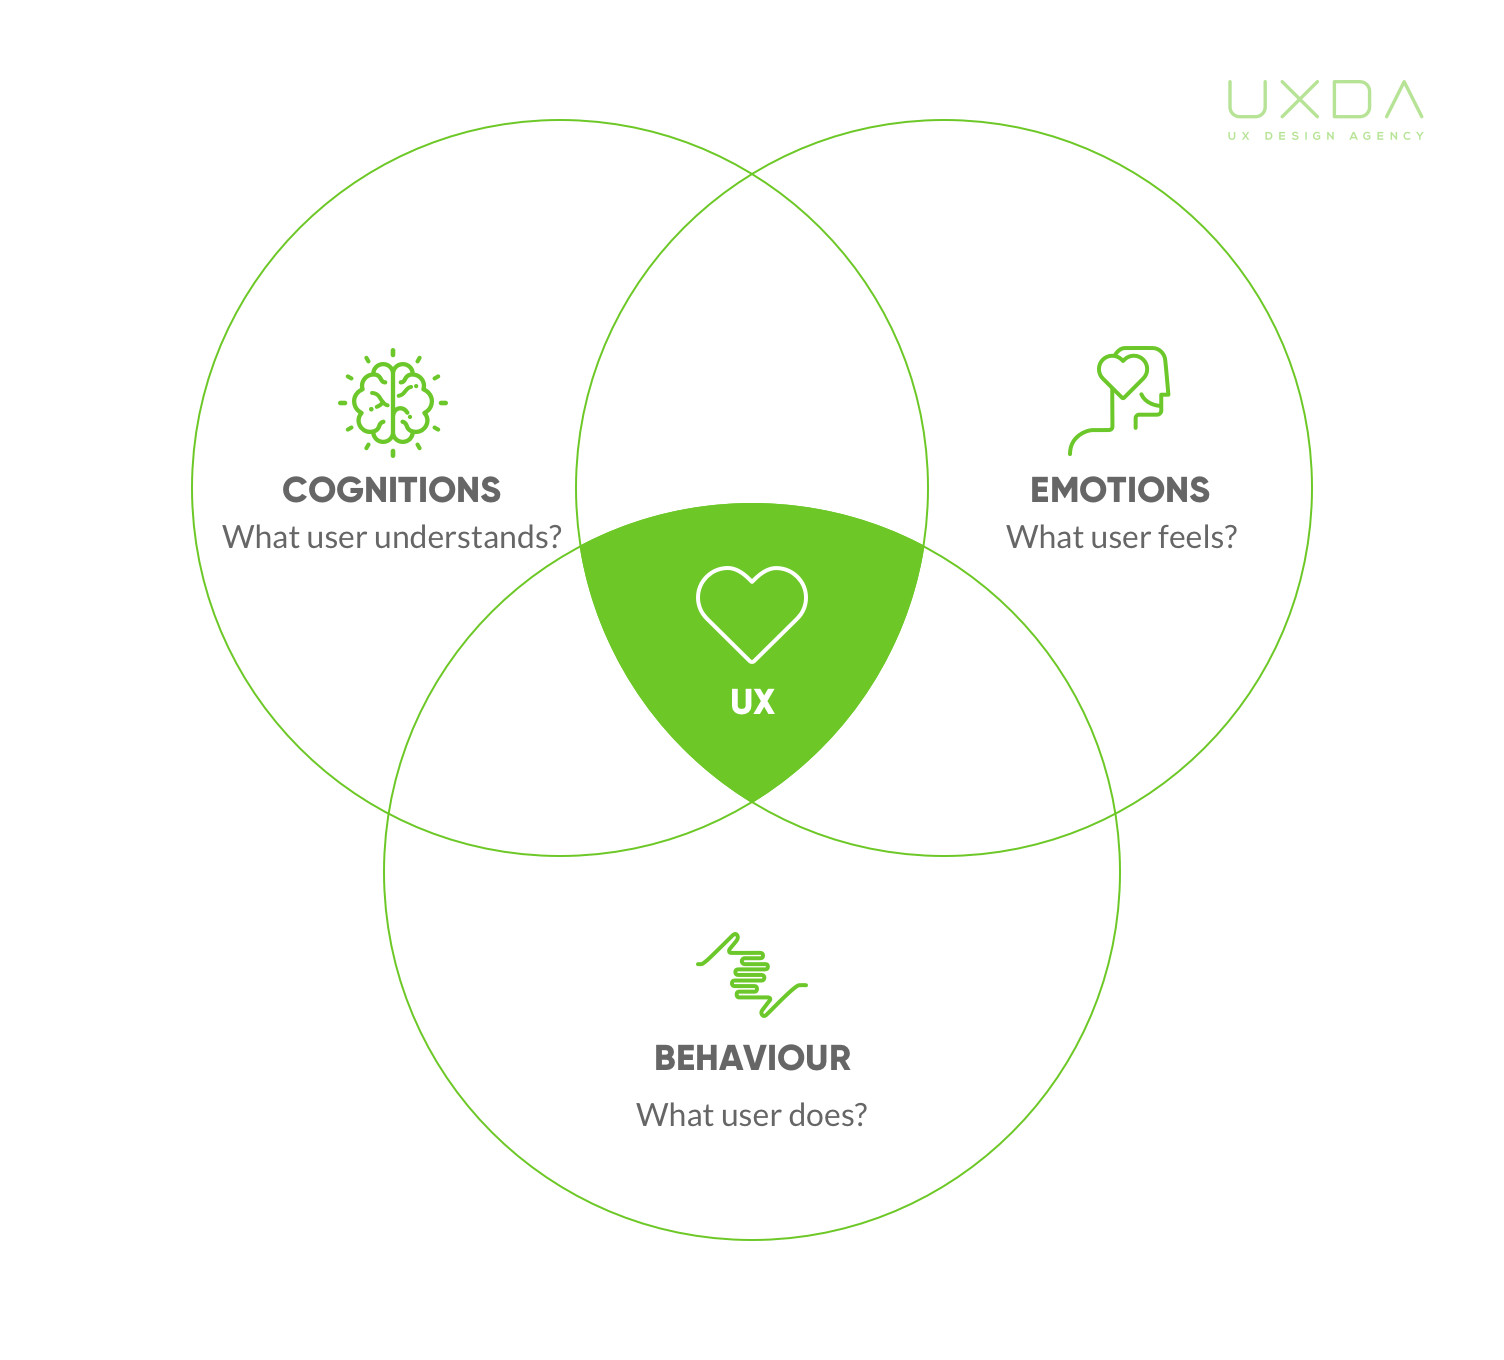 ux-design-for-banking-uxda-methodology-22-S.jpg